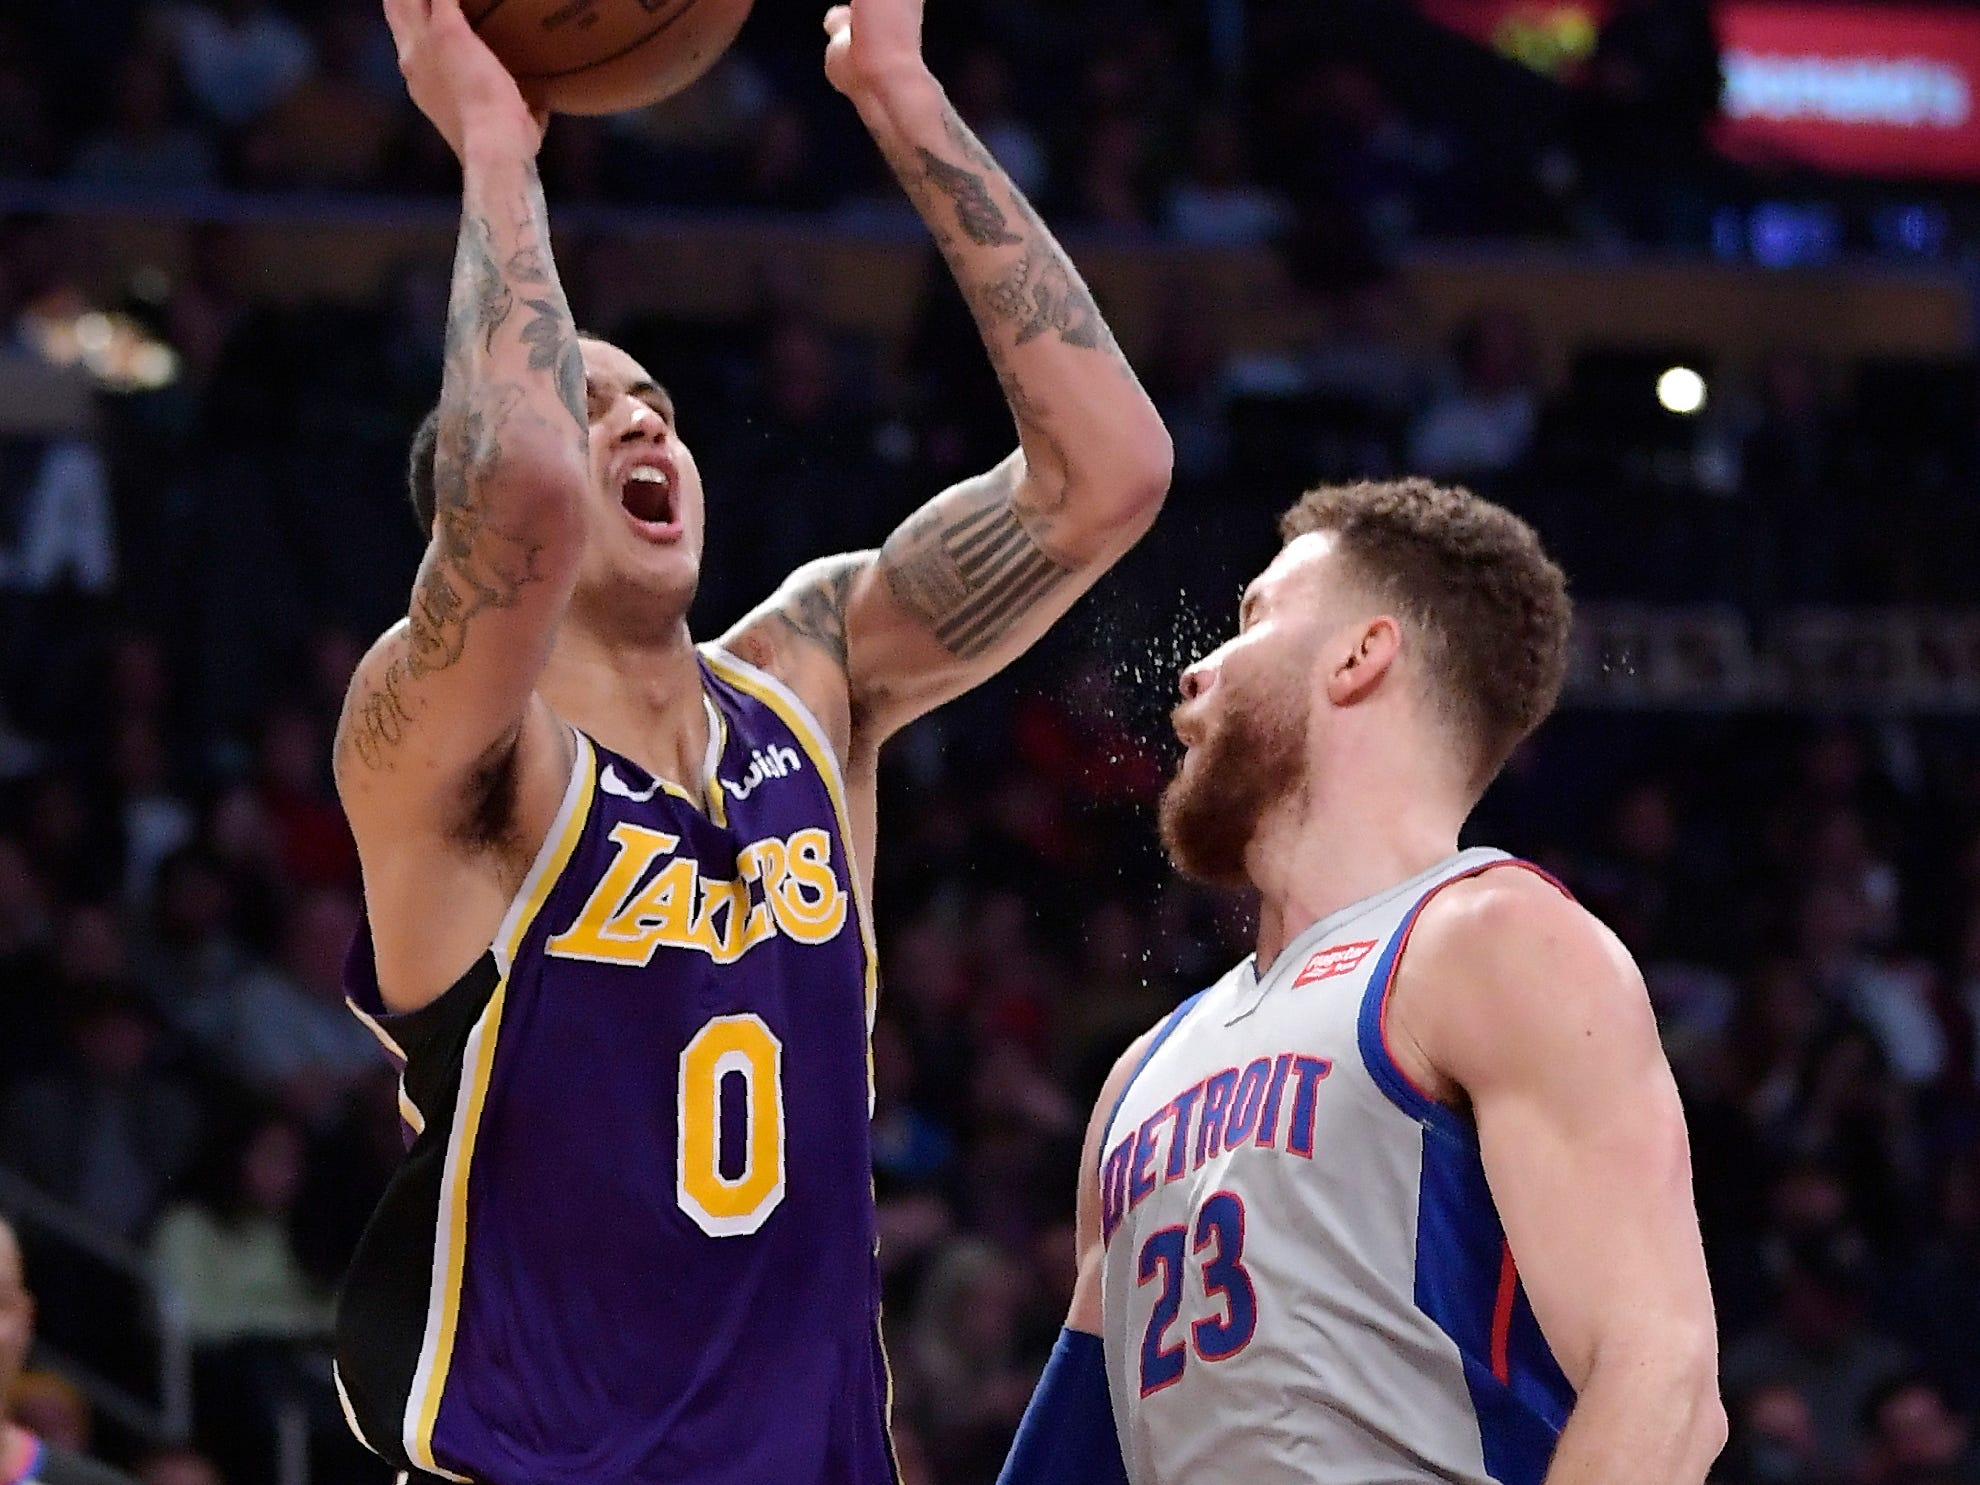 Los Angeles Lakers forward Kyle Kuzma, left, shoots as Detroit Pistons forward Blake Griffin defends during the second half.